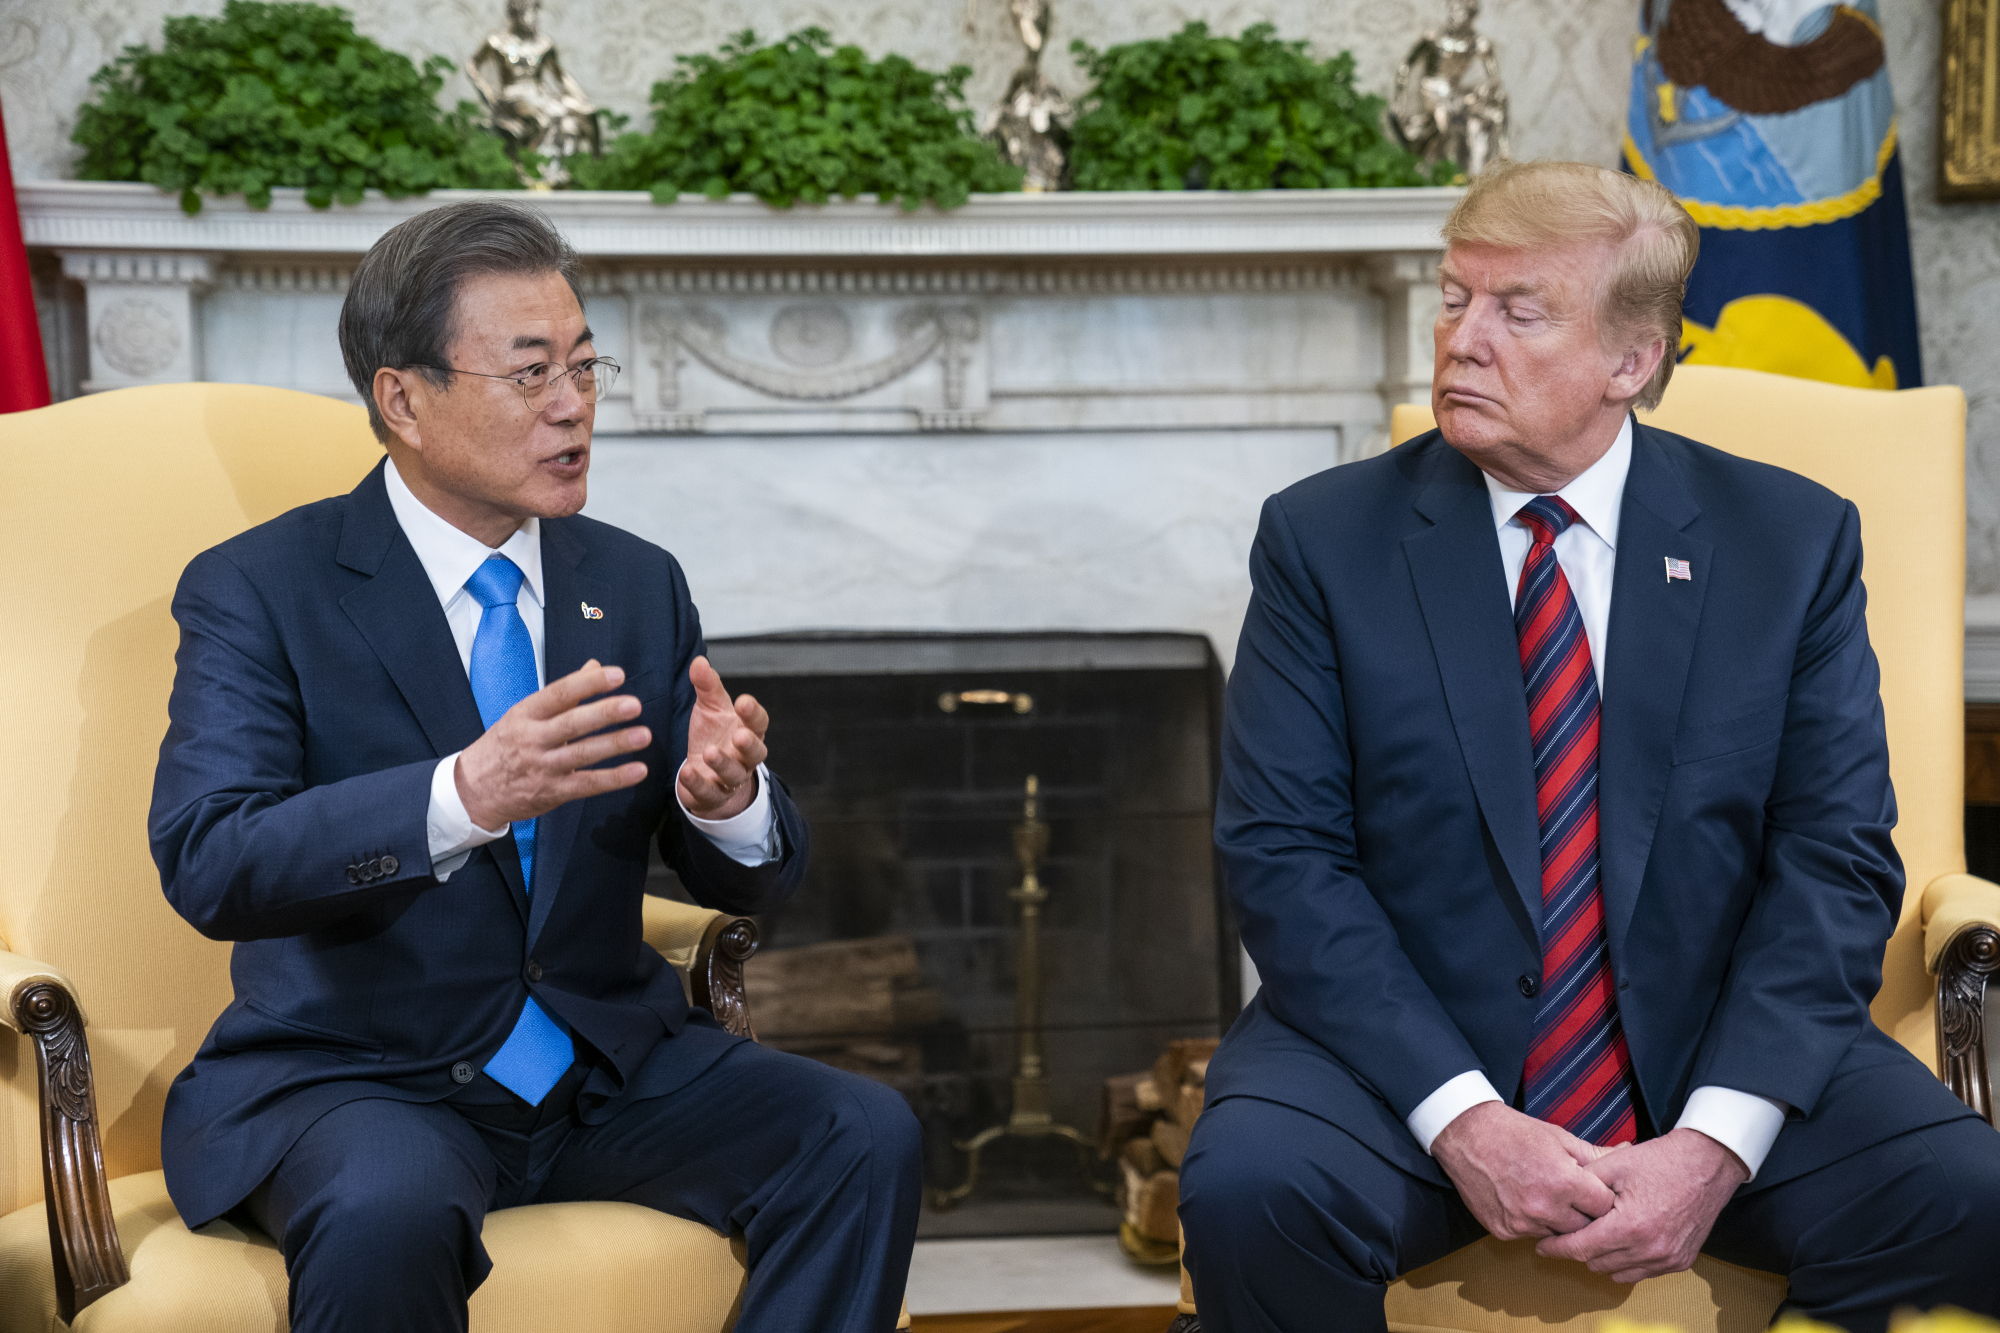 South Korean President Moon Jae-in speaks with U.S. President Donald Trump in the Oval Office of the White House on Thursday. | BLOOMBERG